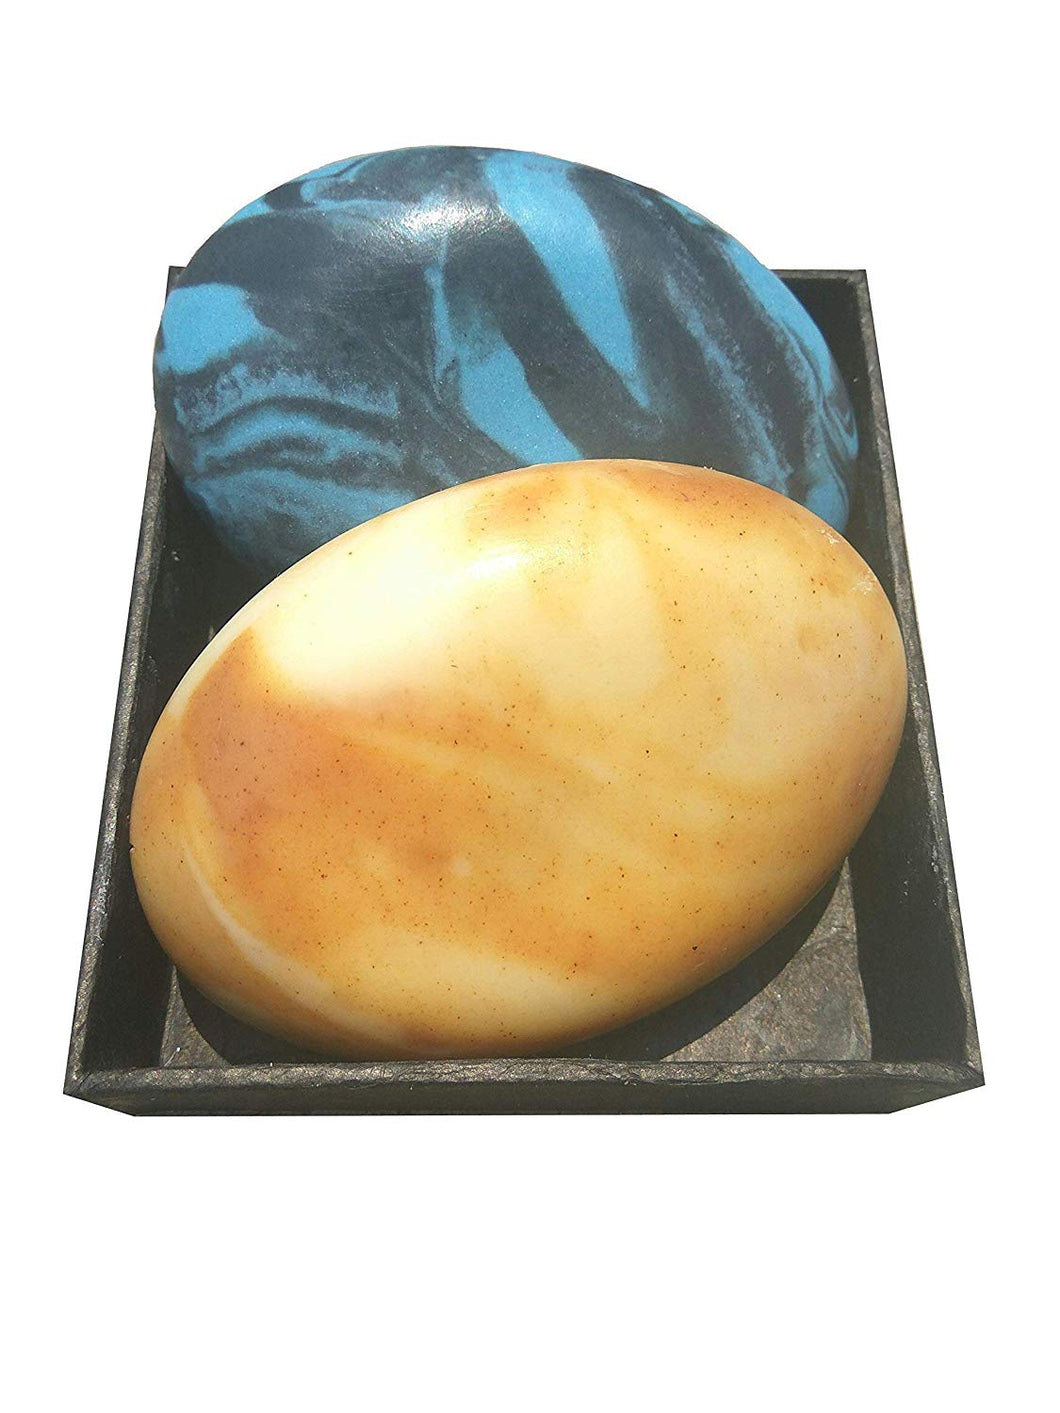 Touch Nature Sandalwood & Rose Soap and Sea Splash Activated Charcoal Stone Shaped Natural Handmade Soap with Handmade Paper Box. Bio-Degradable. Detoxifying. - CraftSoap